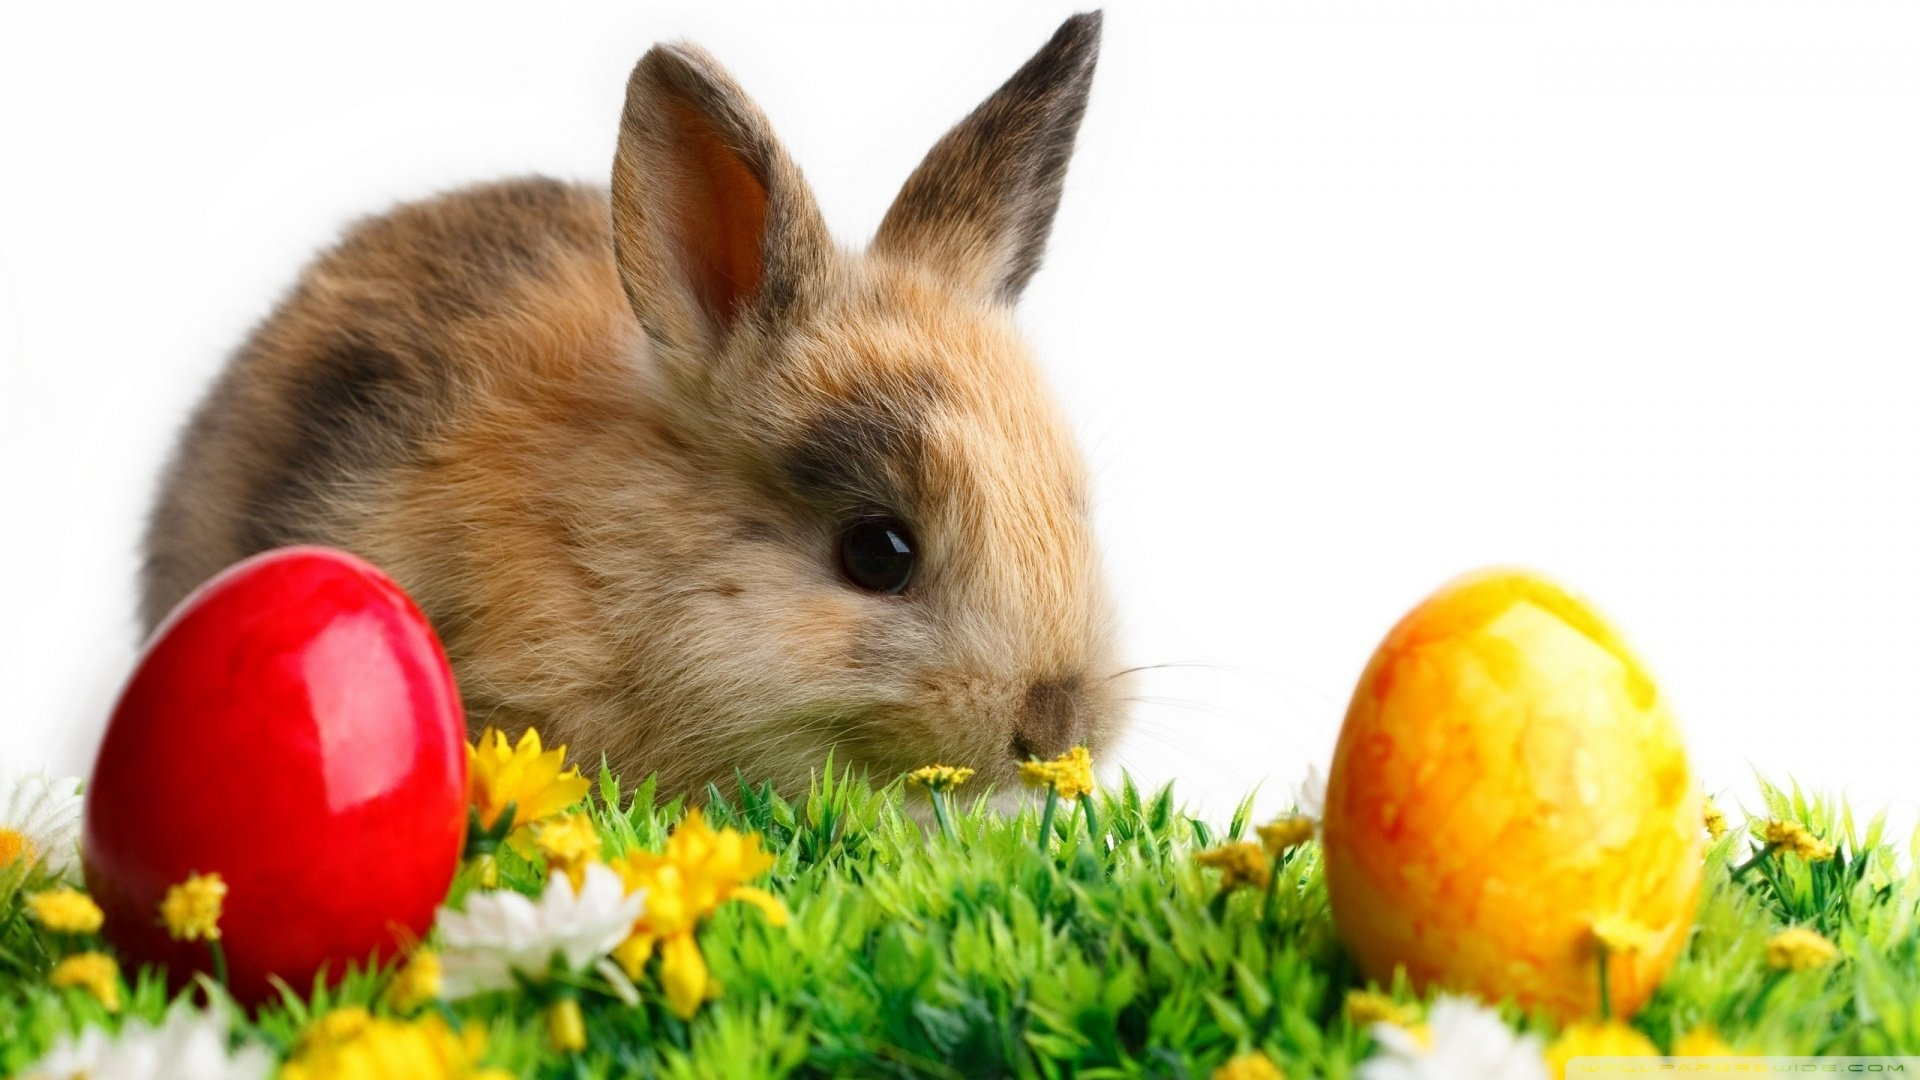 Easter Cute Rabbit Wallpaper 1920x1080 Easter Cute Rabbit 1920x1080